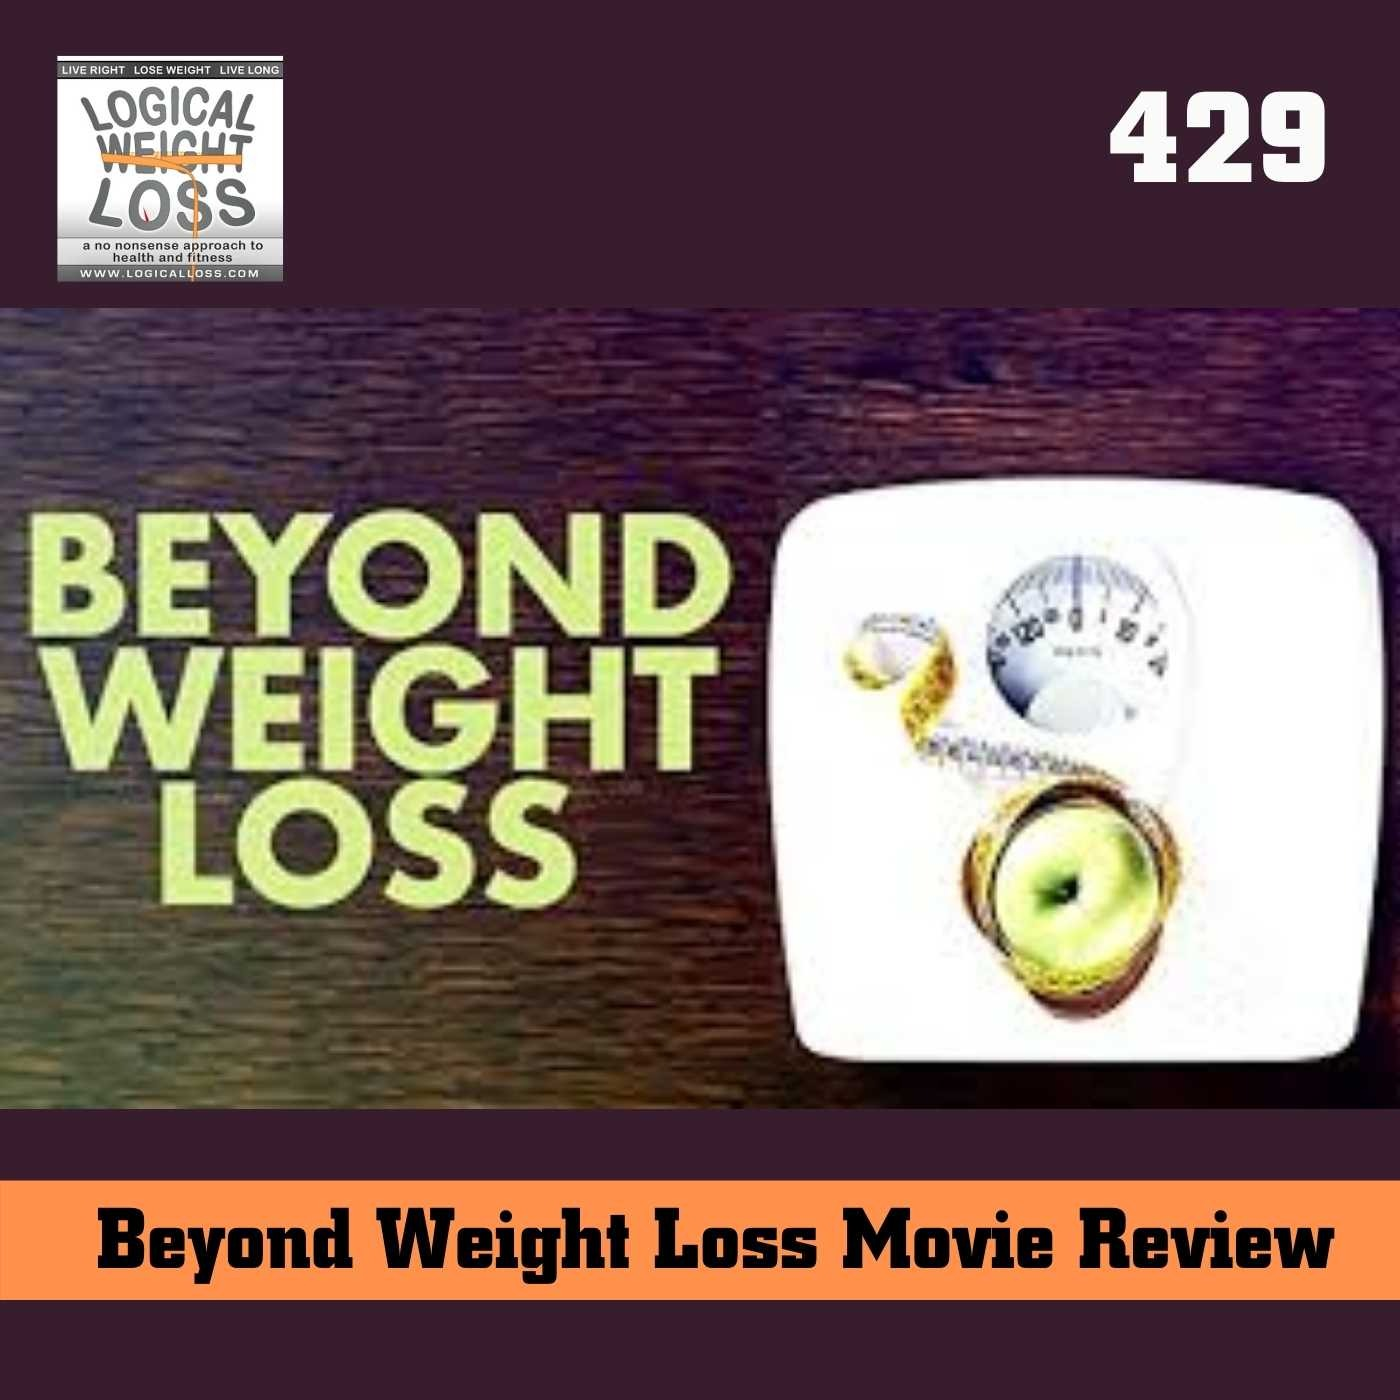 Beyond Weight Loss Movie Review